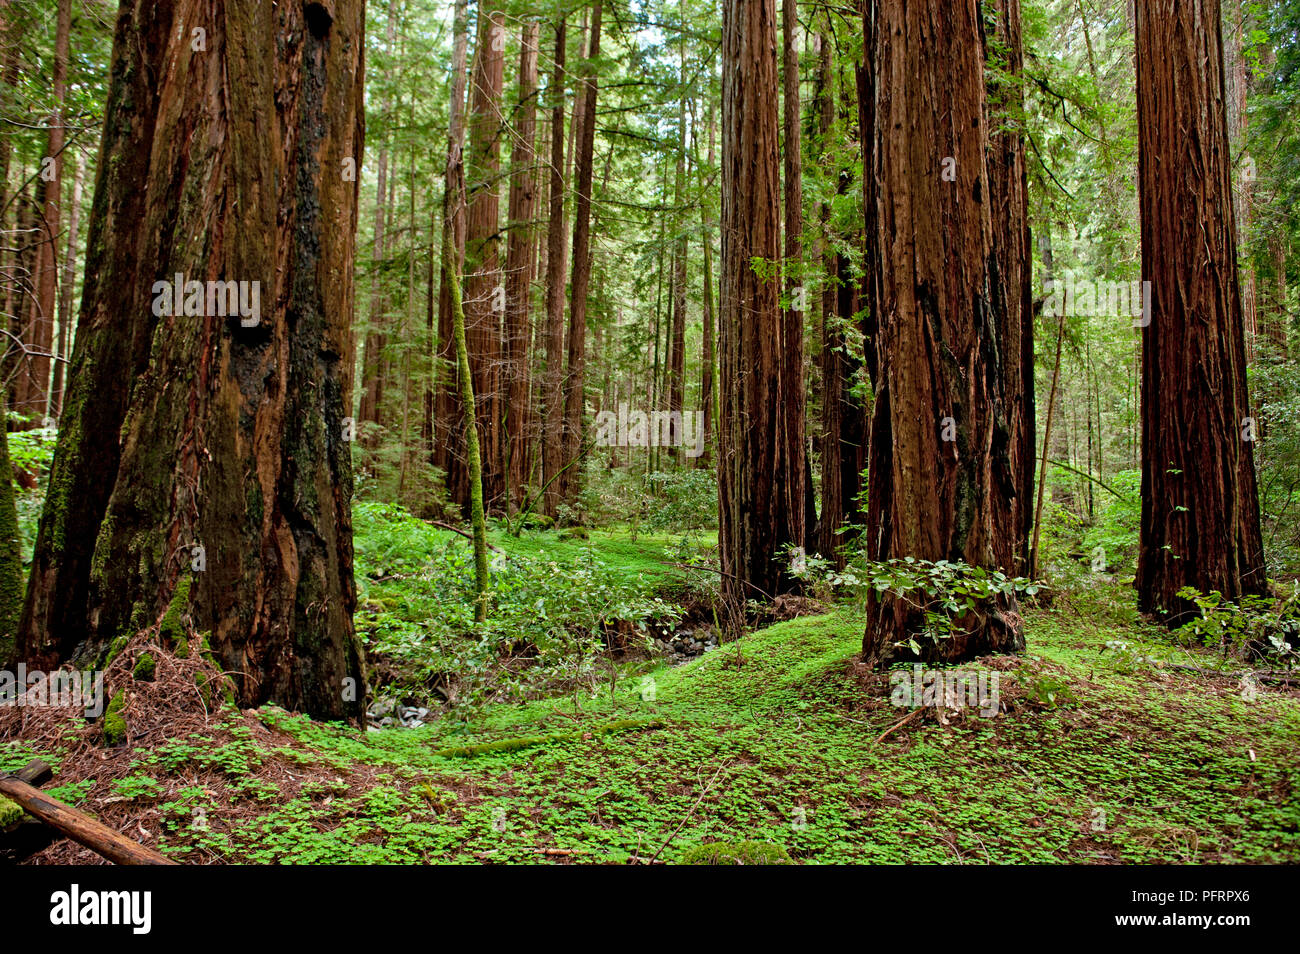 USA, California, Sonoma County, Armstrong Redwoods State Park, trees in forest - Stock Image